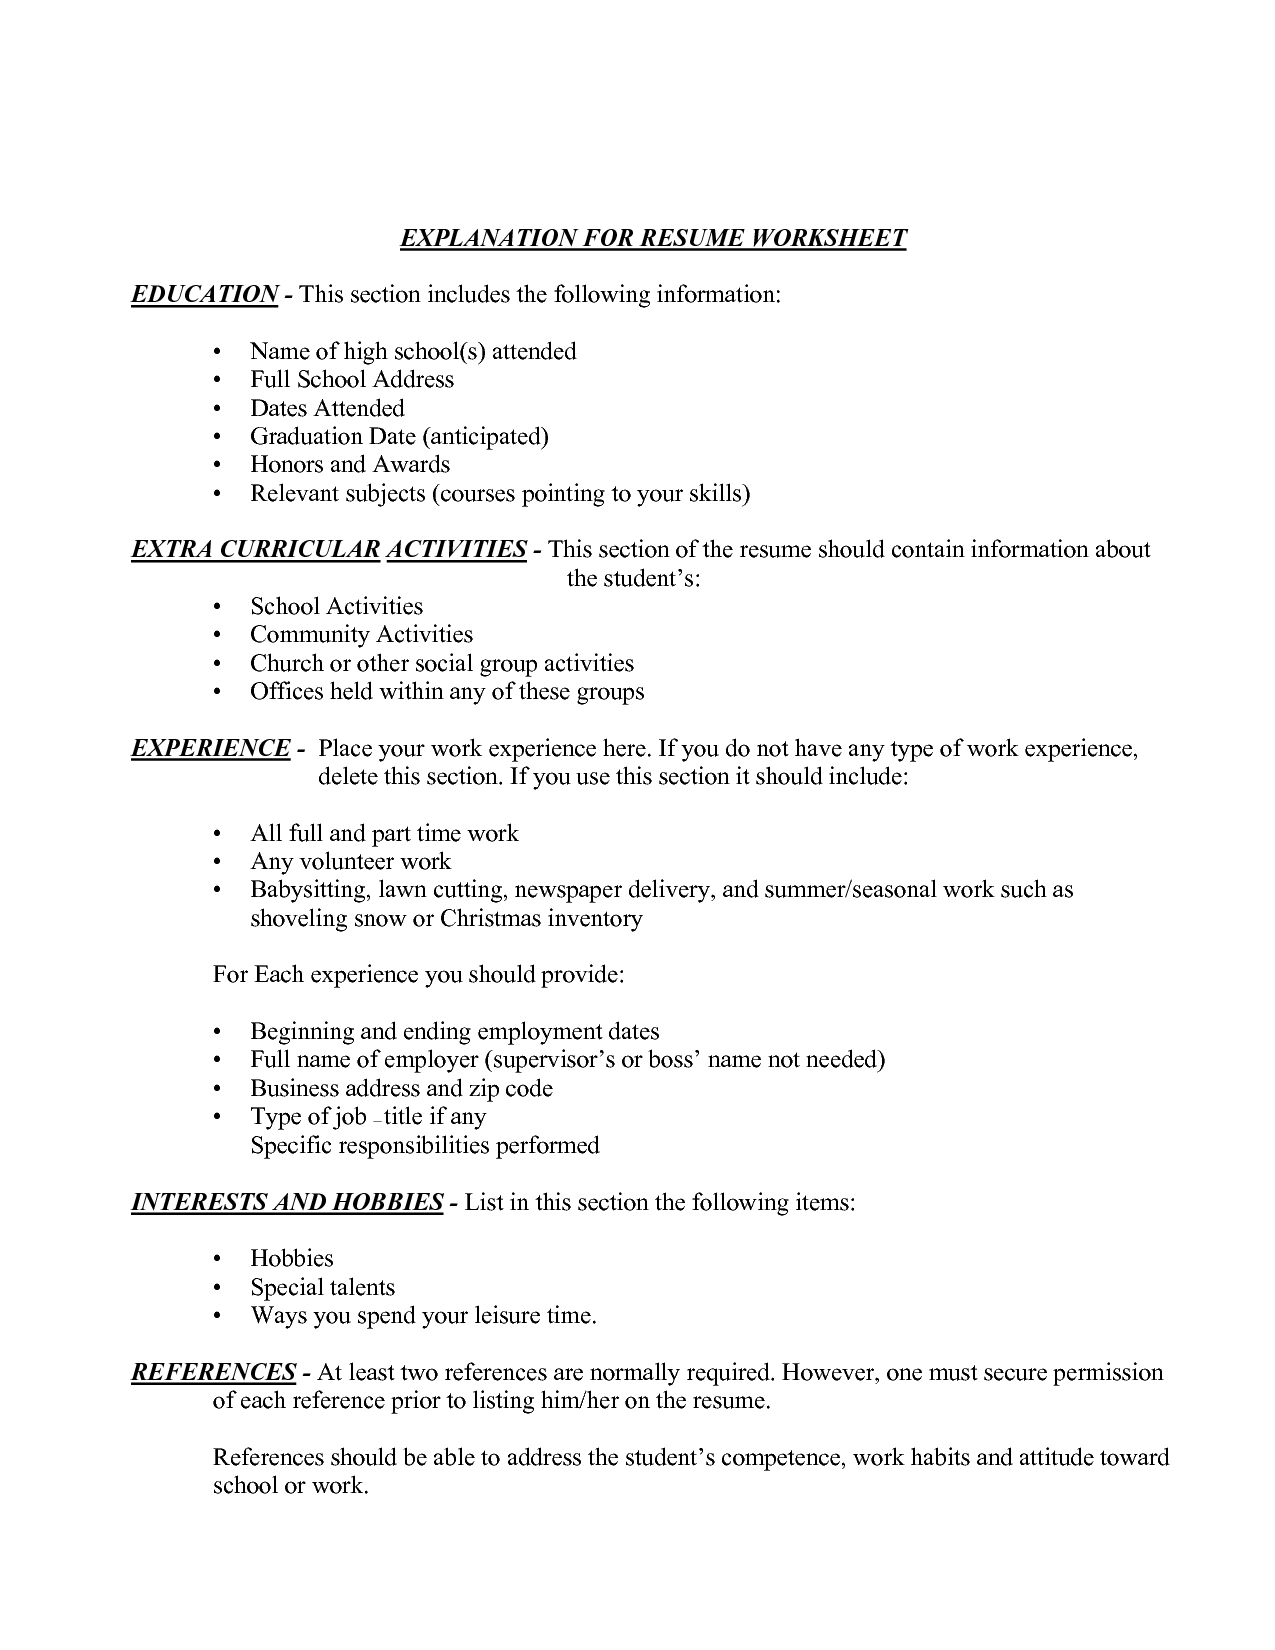 12 Best Images Of Resume Information Worksheet